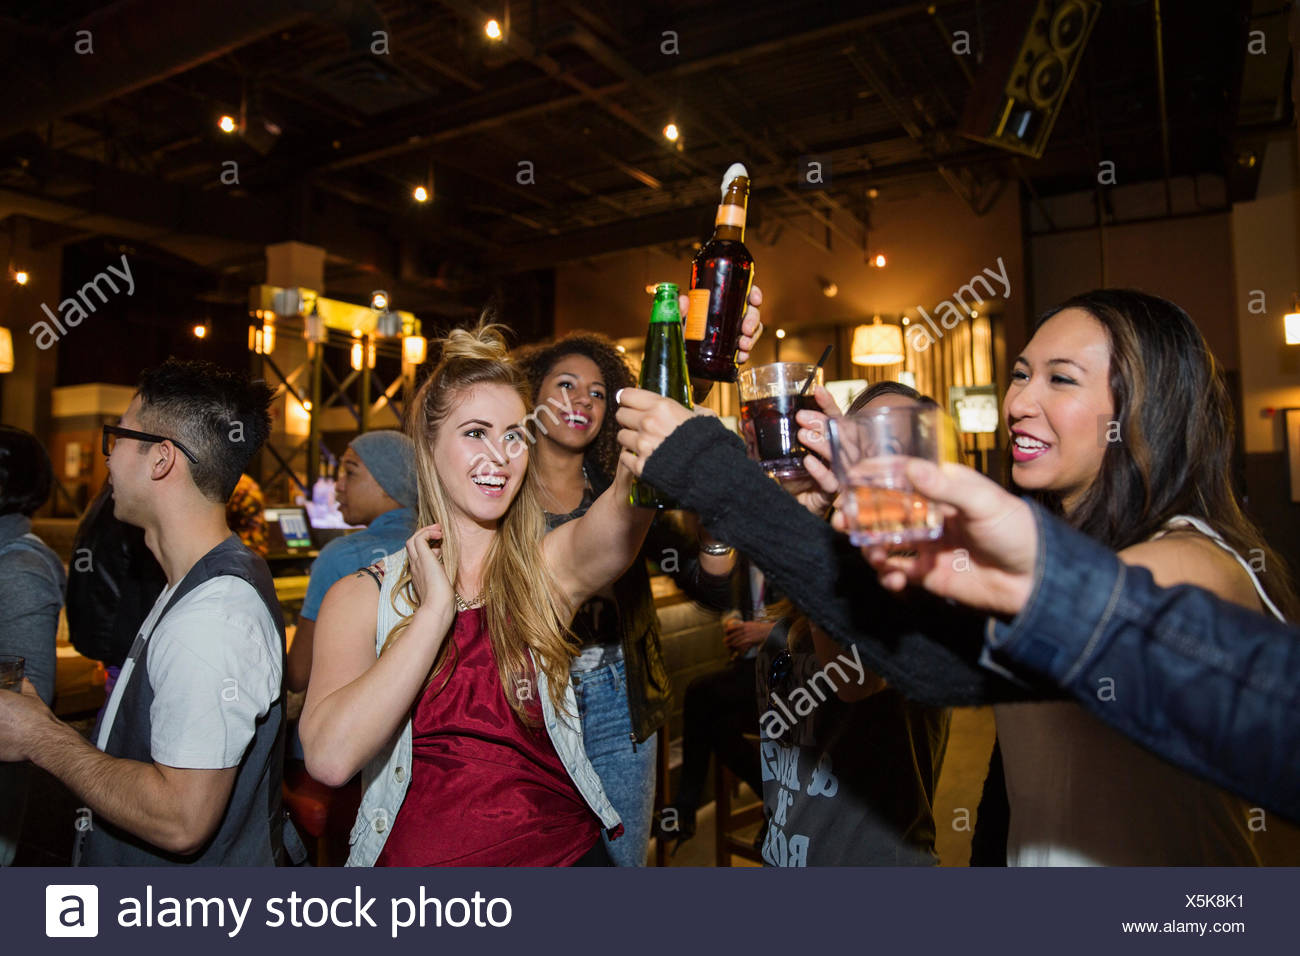 Friends toasting cocktails at bar - Stock Image